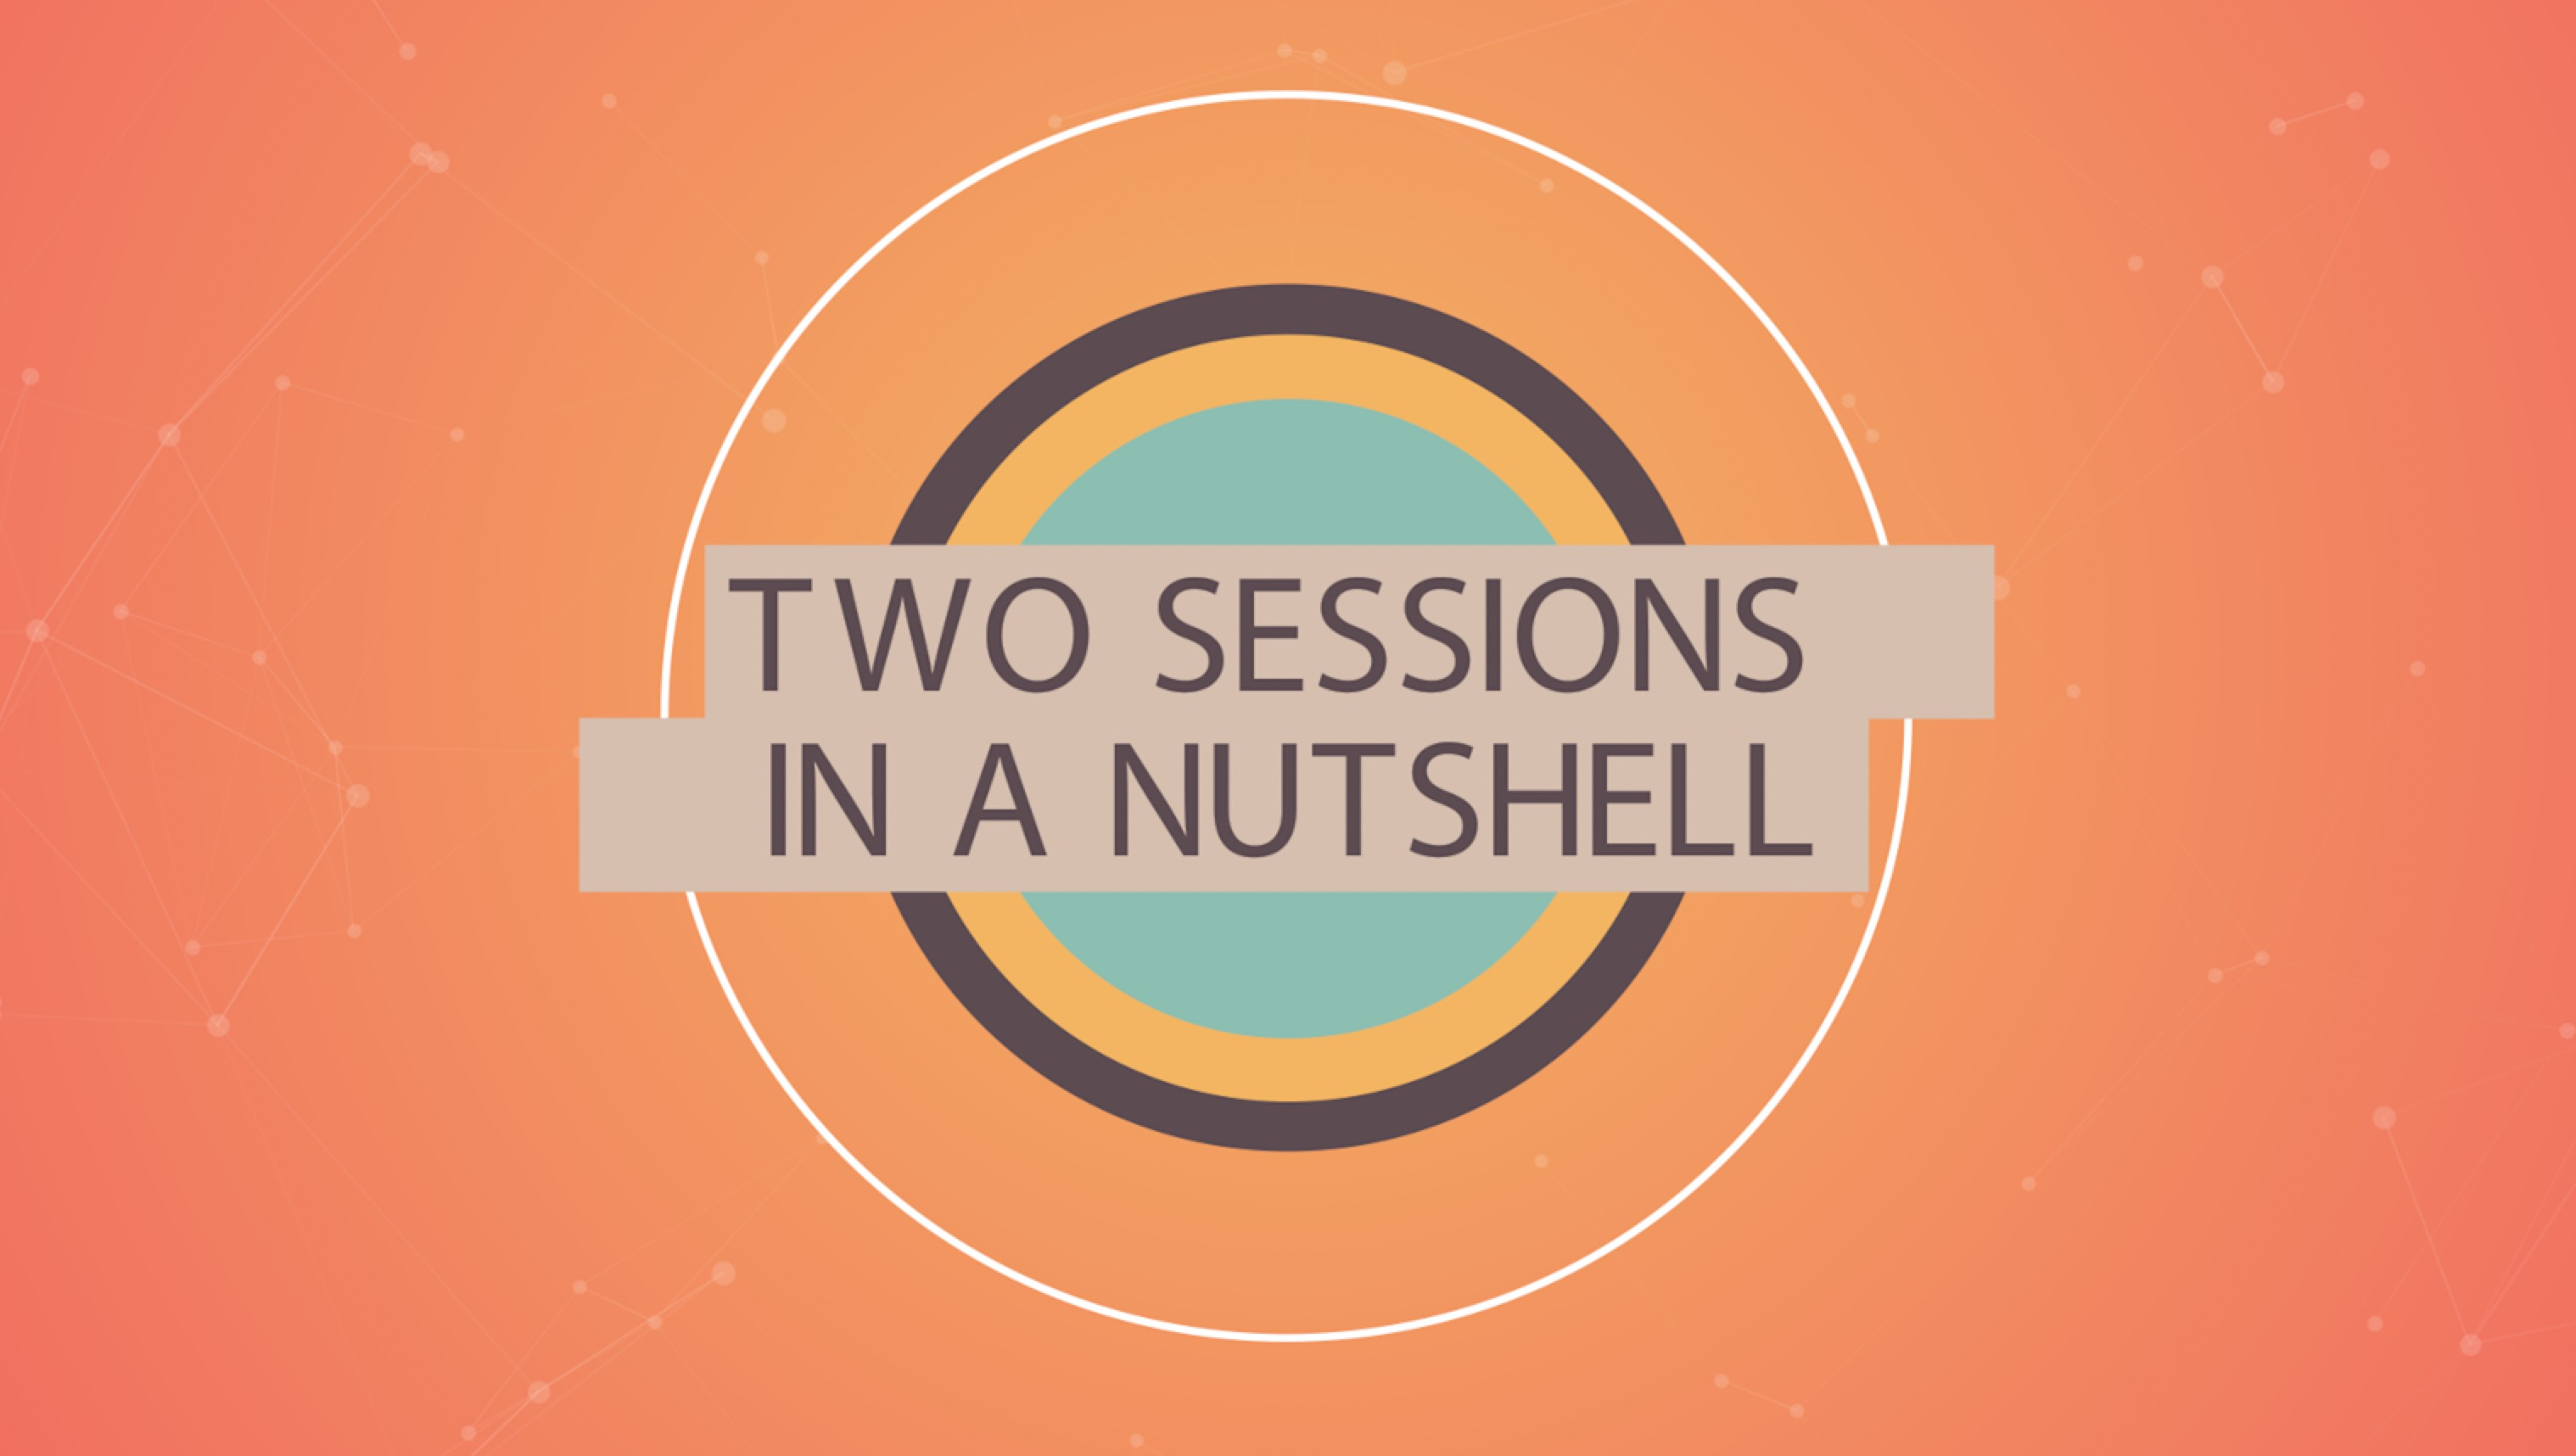 Two Sessions in a Nutshell Episode 7: High tech tops the agenda